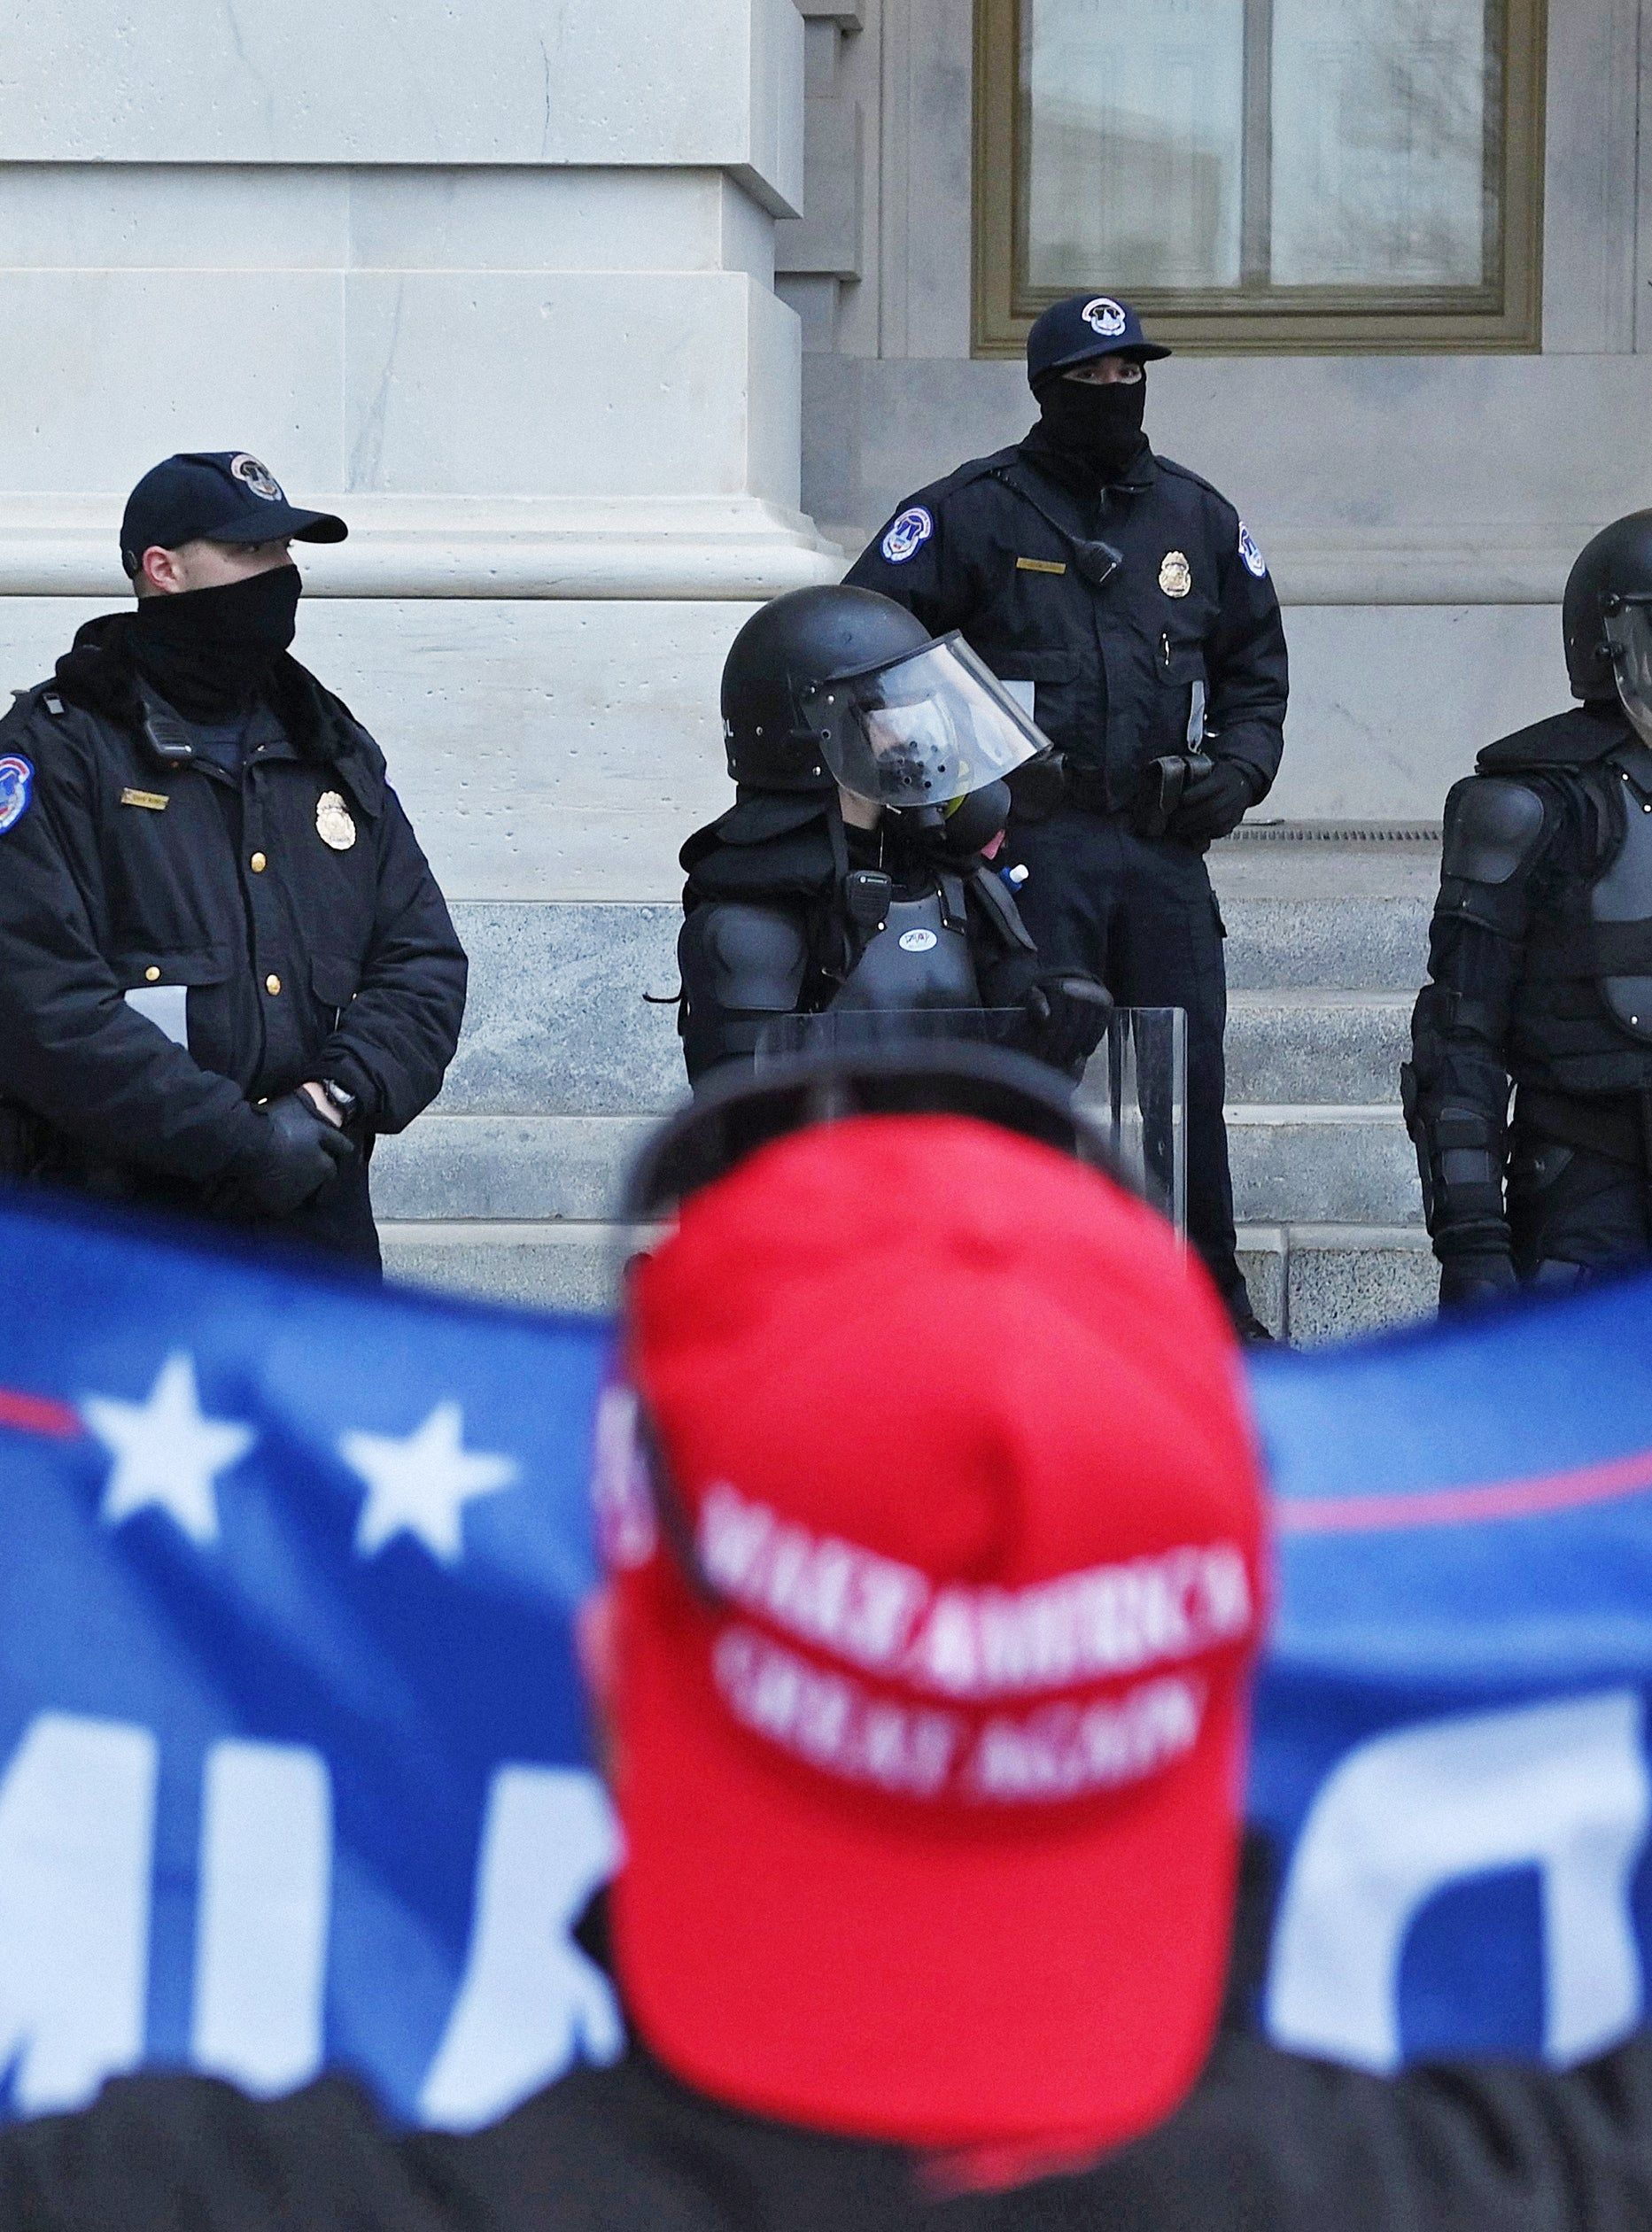 Police Treated White Rioters At The Capitol Like Their Lives Mattered In 2021 Black Lives Matter Protest Lives Matter Black Lives Matter